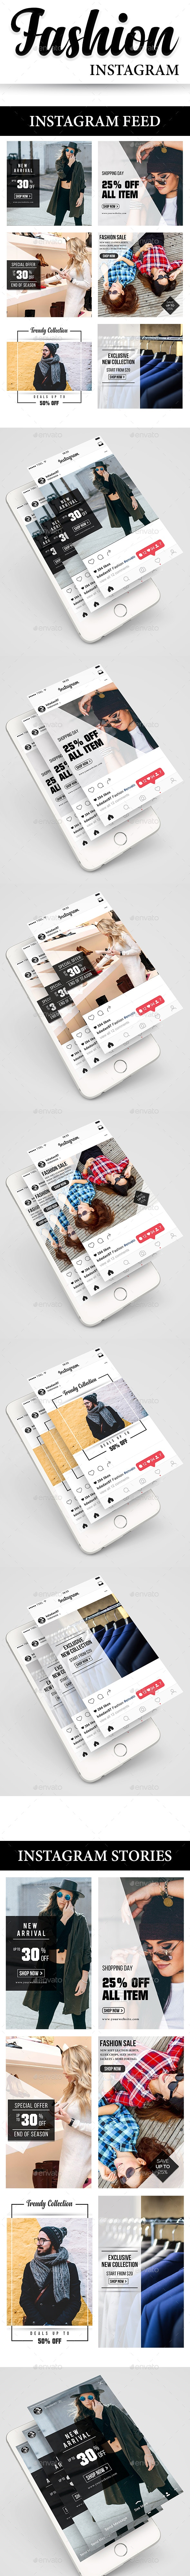 Fashion Instagram (Feed + Stories) - Social Media Web Elements